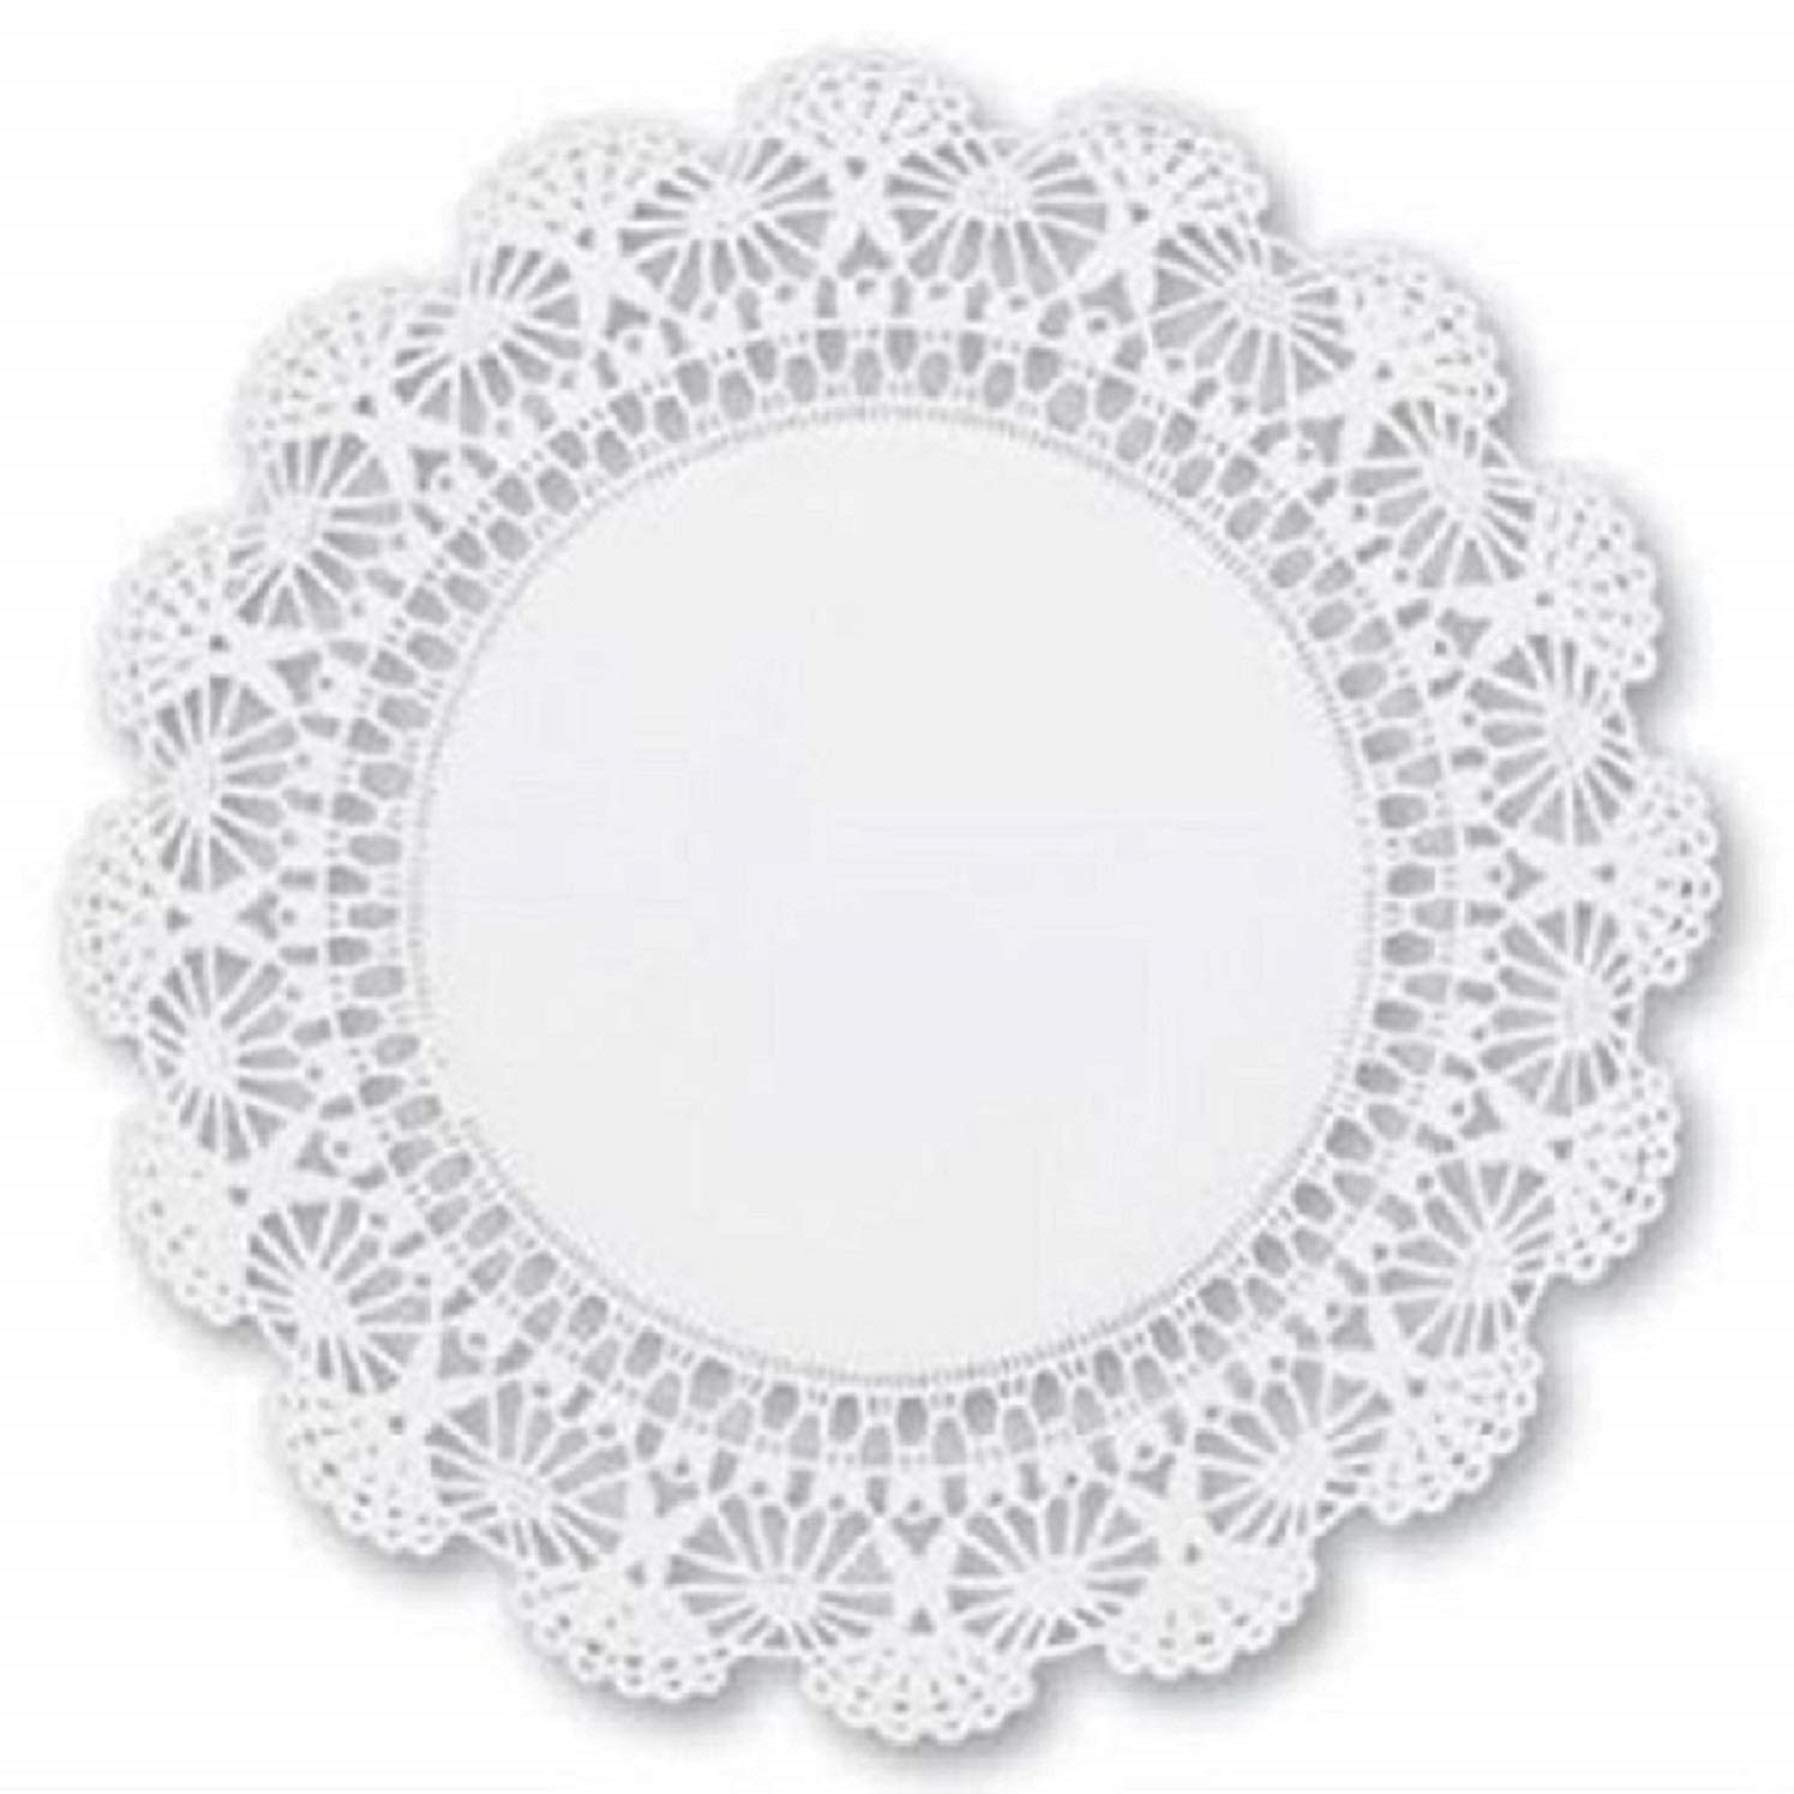 10 inch White Round Paper Lace Doilies - Bring an extra touch of elegance to the presentation of your desserts (100)